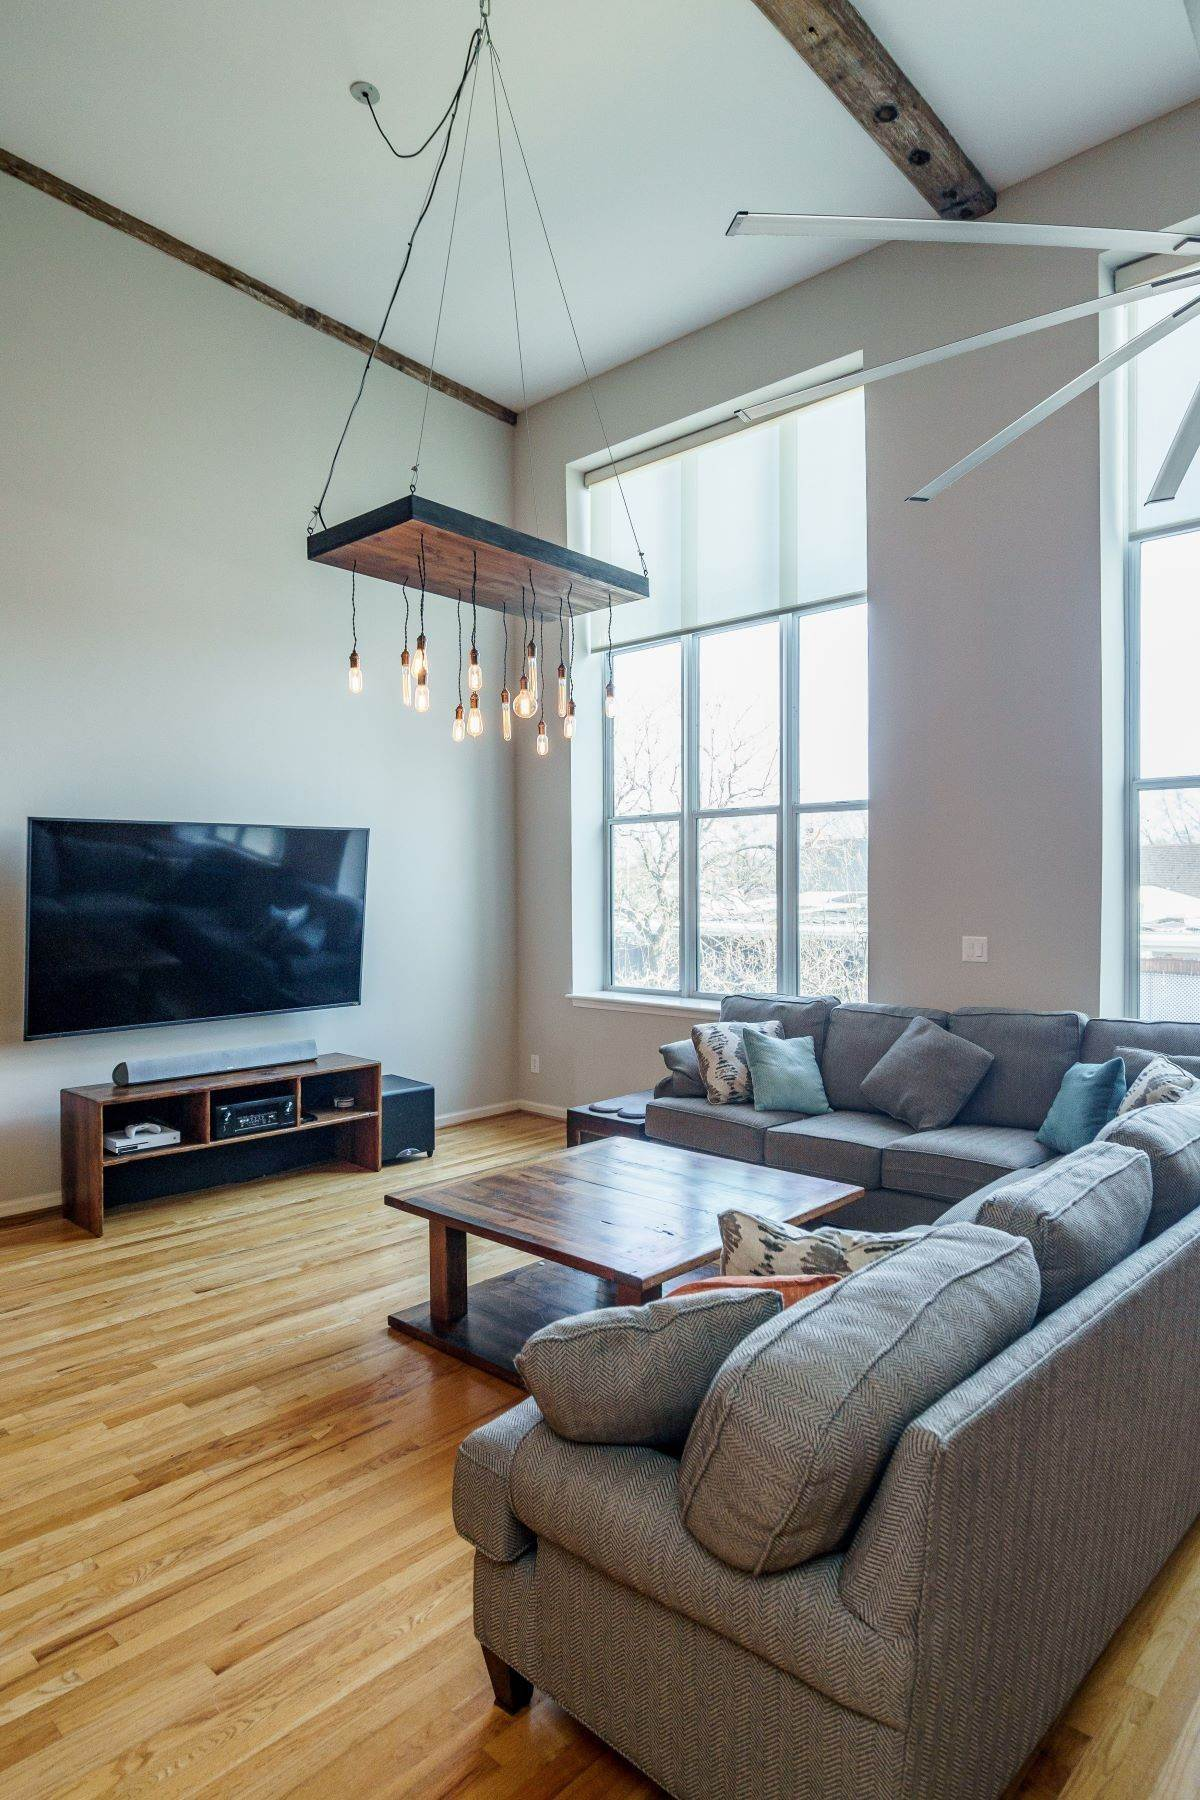 9. Single Family Homes for Sale at Large Industrial Loft in The Cotton Mill 614 Capital Boulevard Unit 225 Raleigh, North Carolina 27603 United States